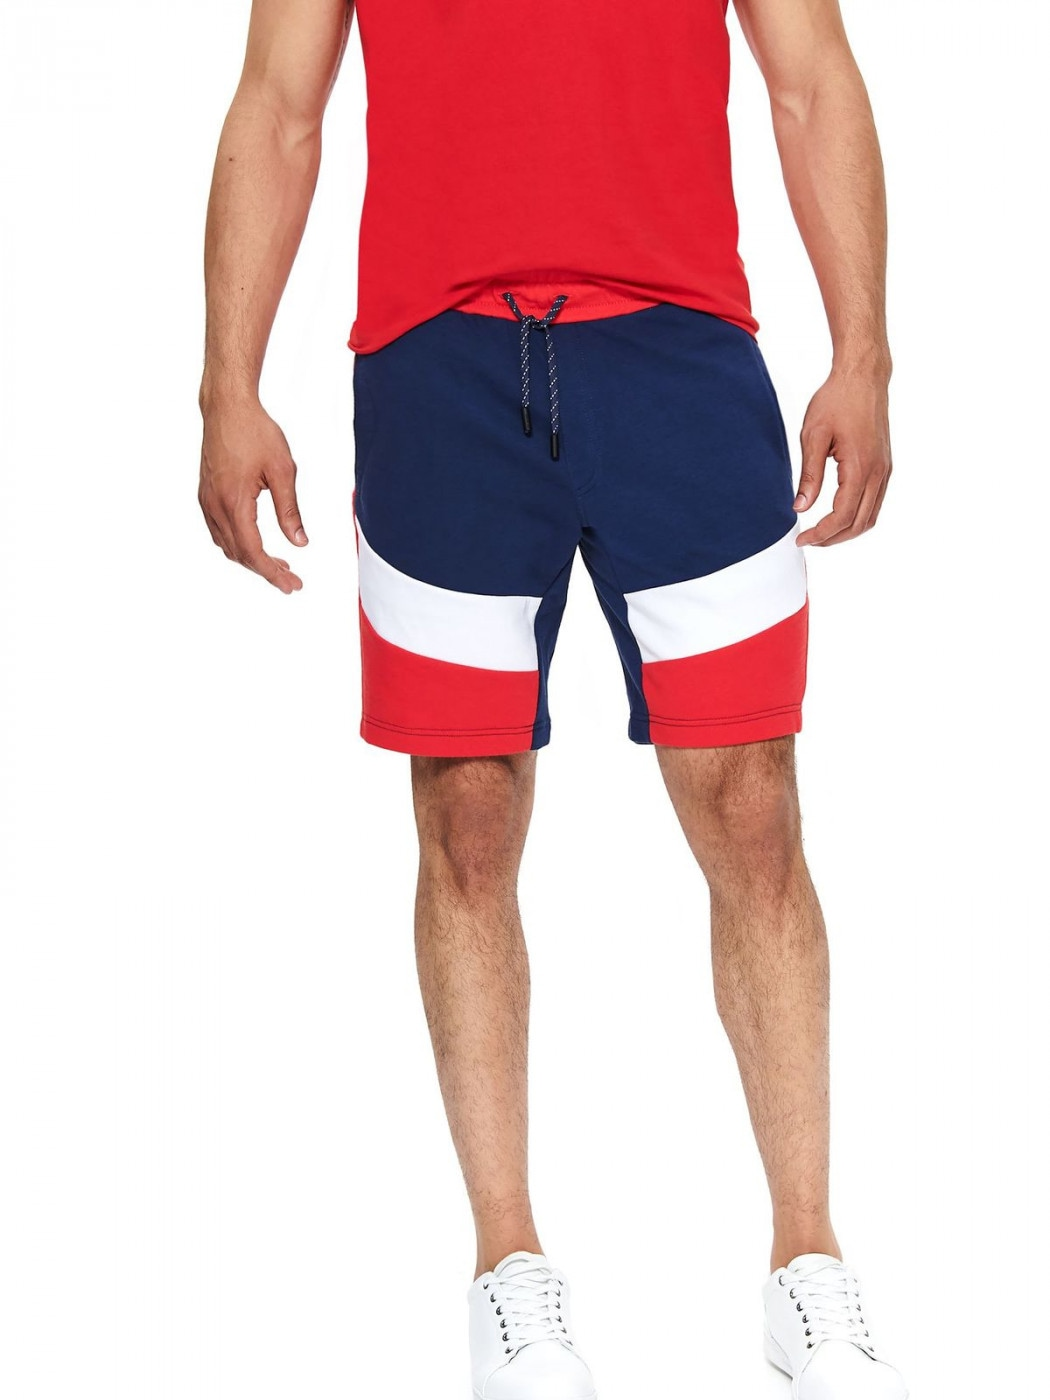 Men's shorts Top Secret Casual